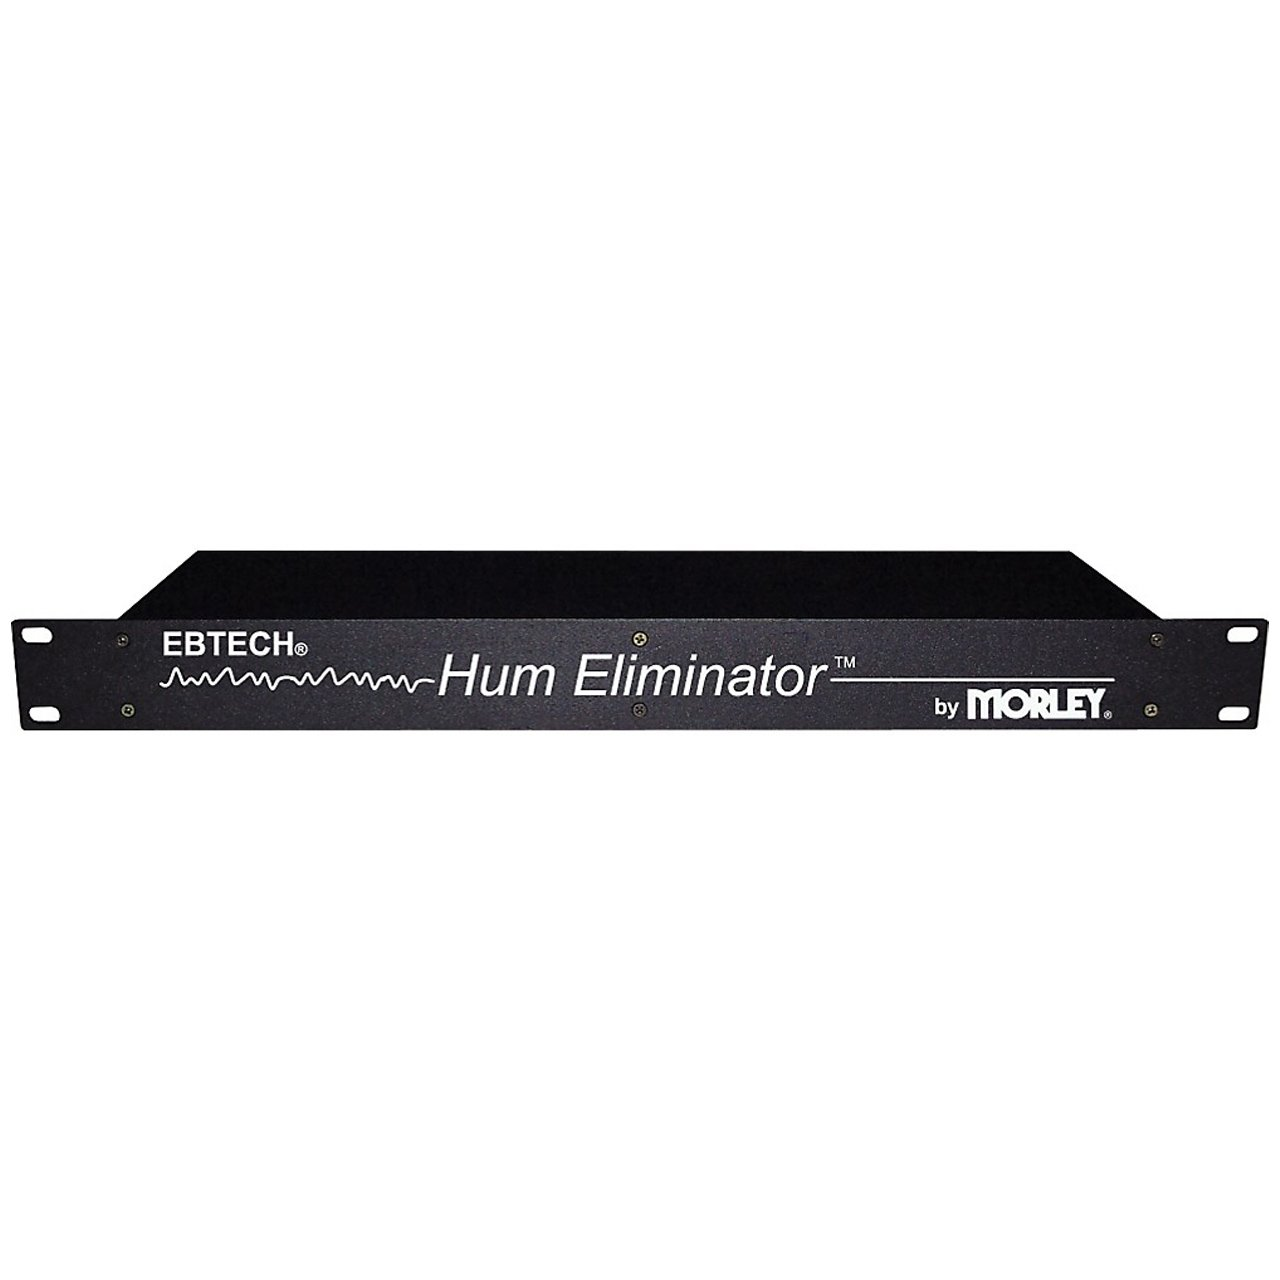 EBTech Hum Eliminator 8-channel Rack-Mountable w/ TRS Connectors